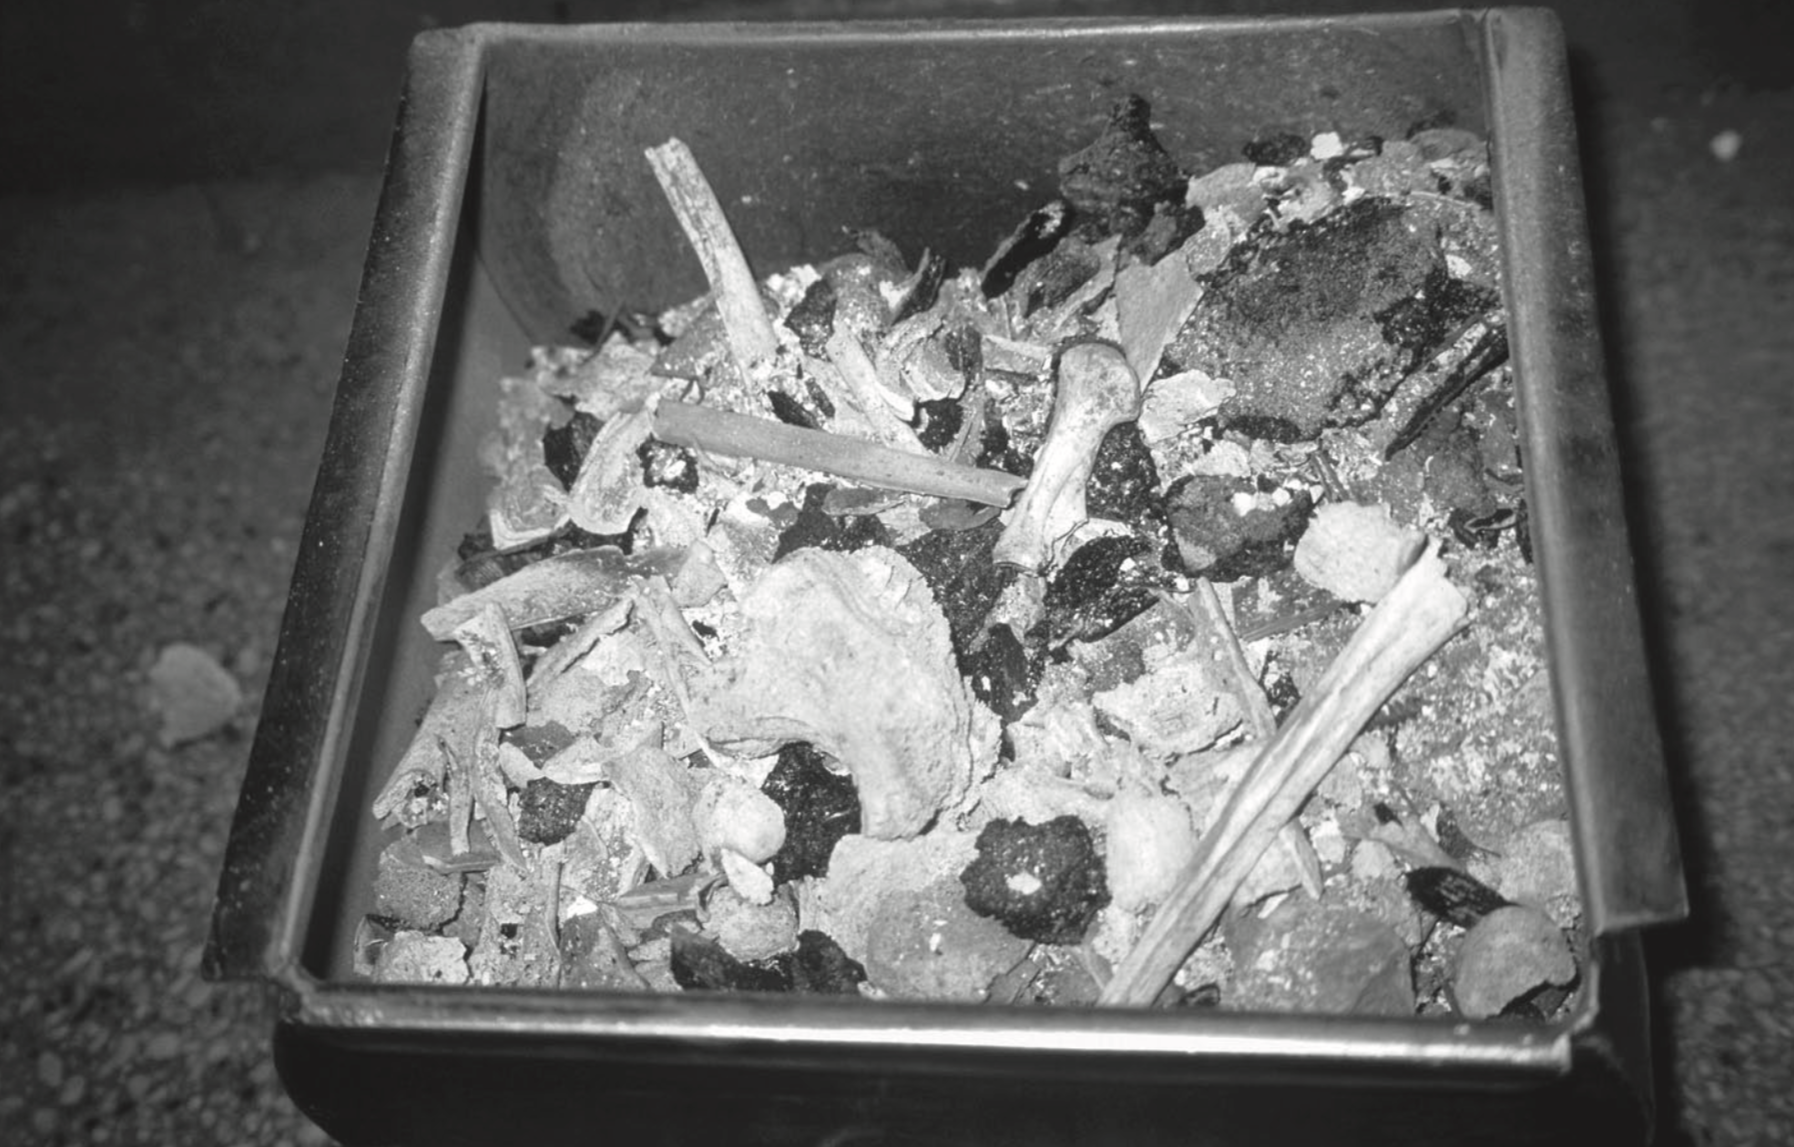 Bones from a modern cremation prior to grinding at møllendal crematorium. credits: Terje østigård